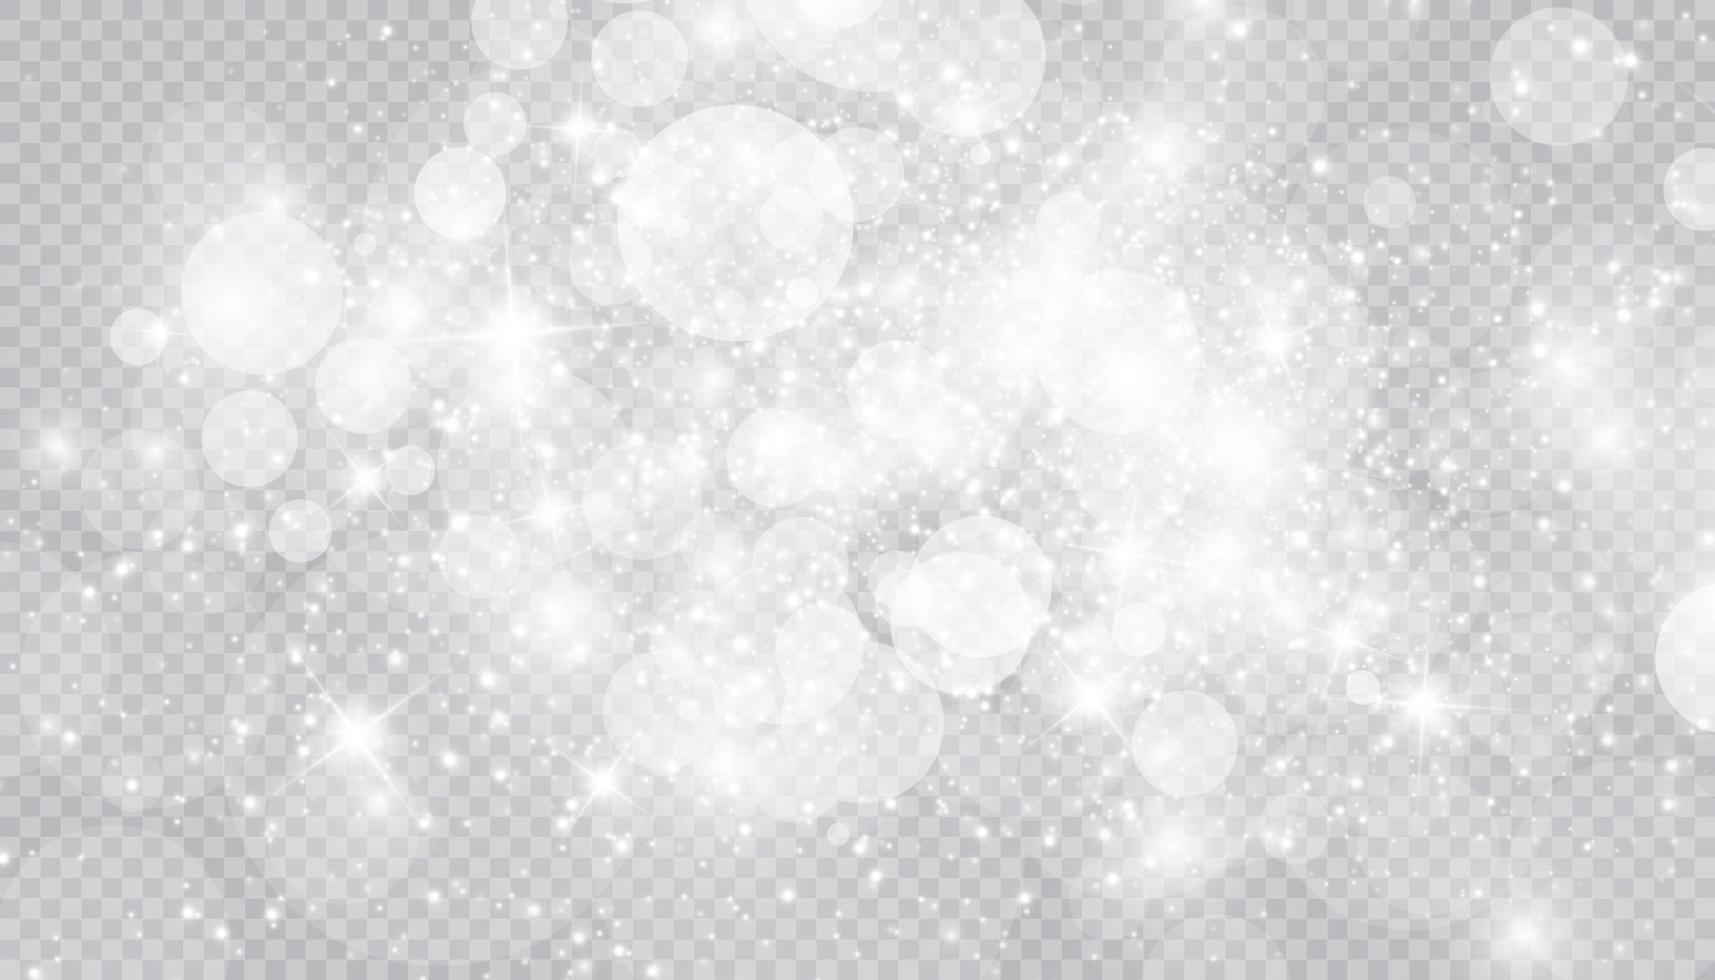 Glowing light effect with many glitter particles isolated background. Vector starry cloud with dust. Magic christmas decoration